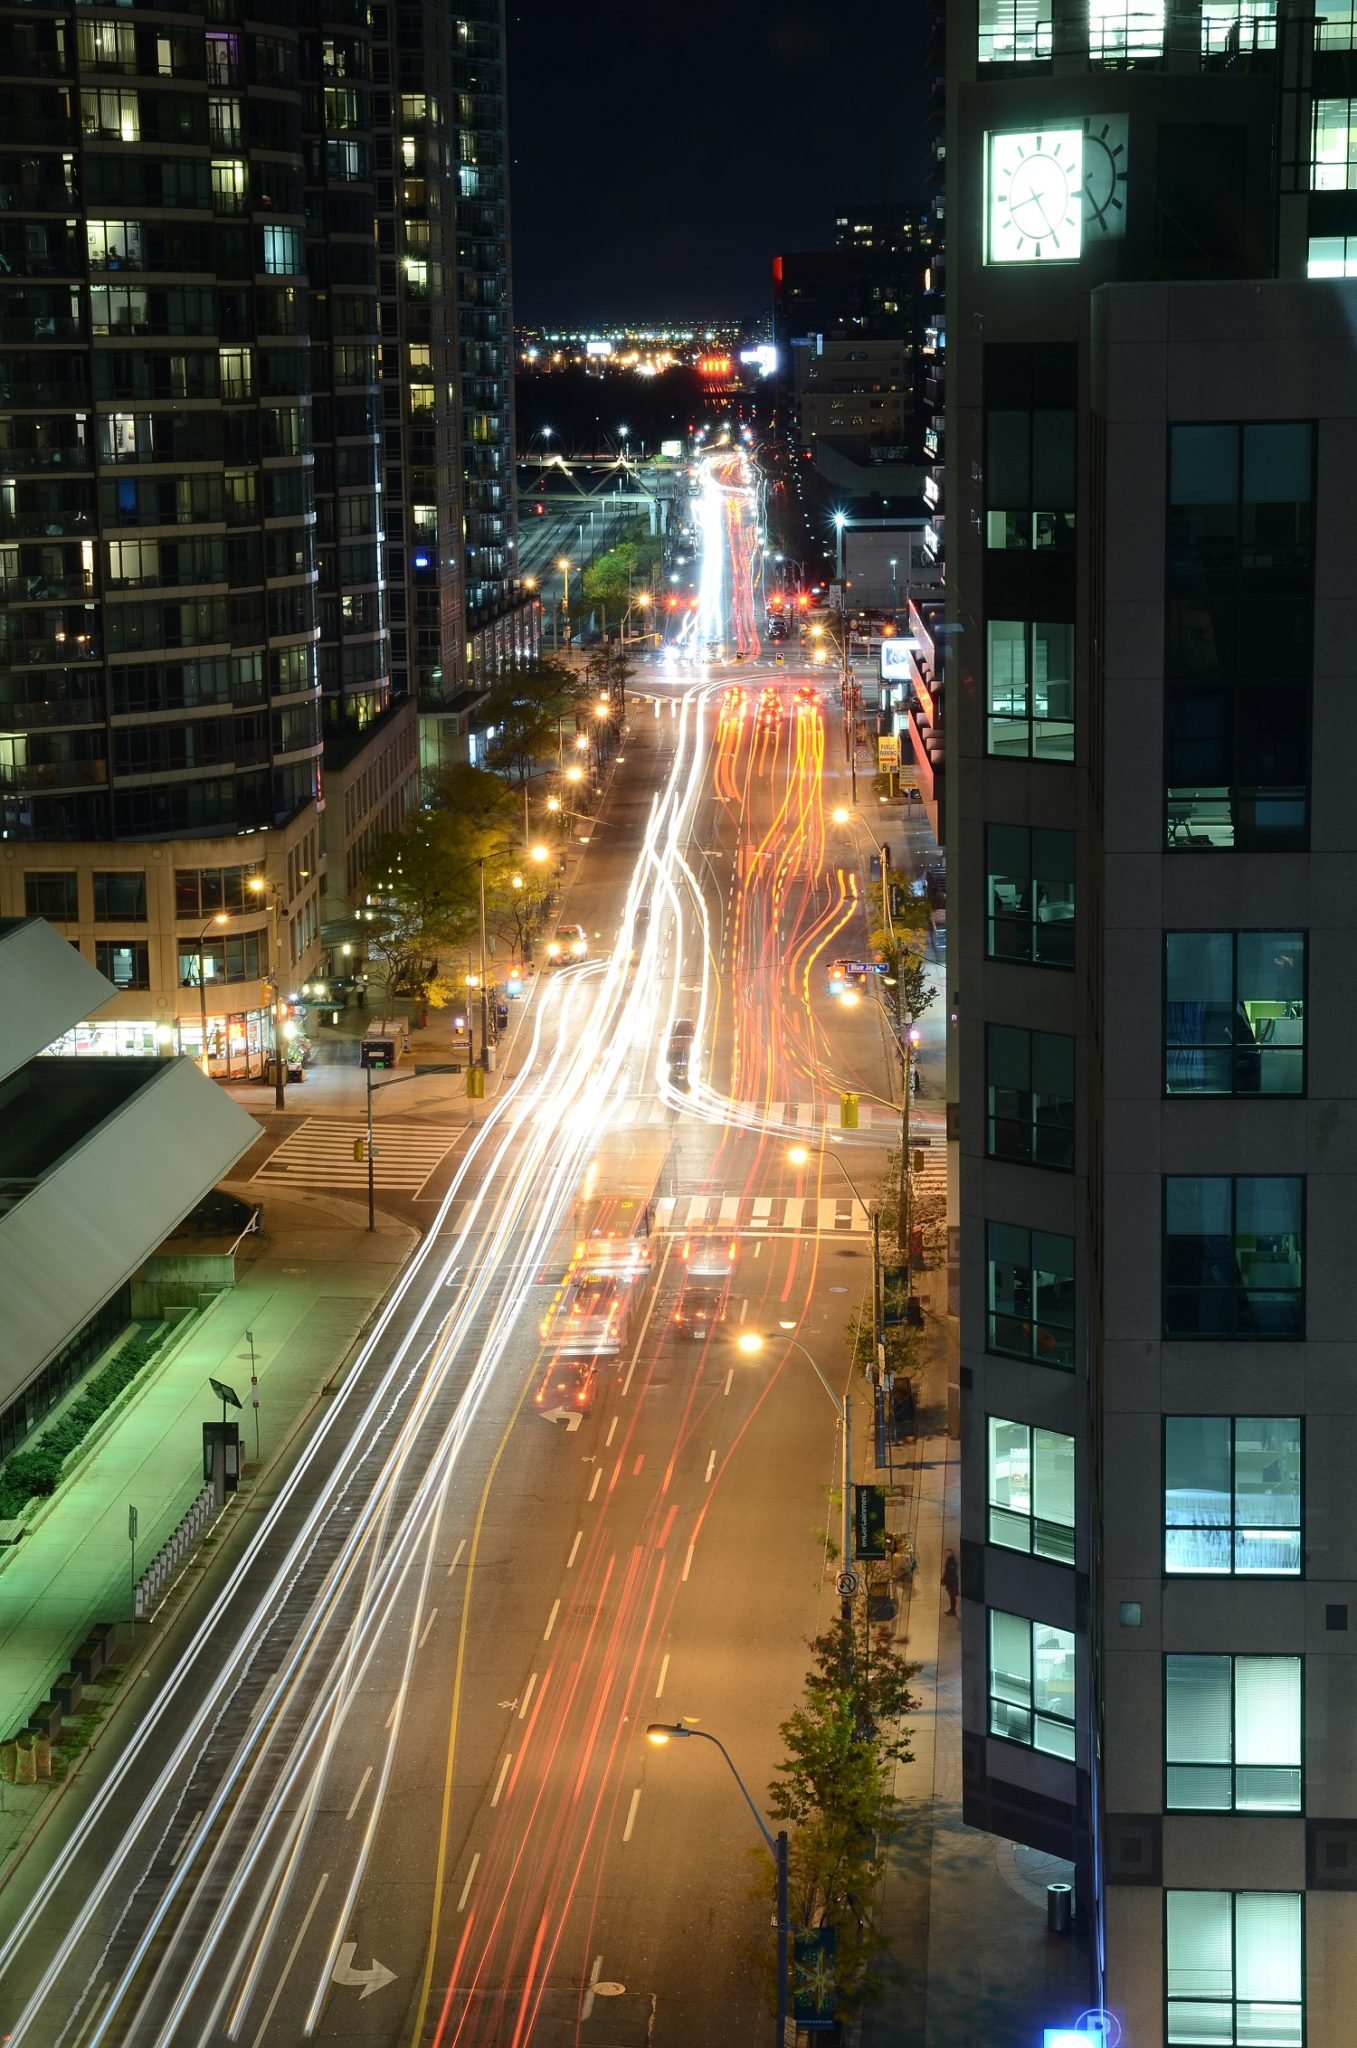 Photo Credit: Adnan Ali Muhammed. Shows the beauty of Toronto's Front Street West, as seen at night